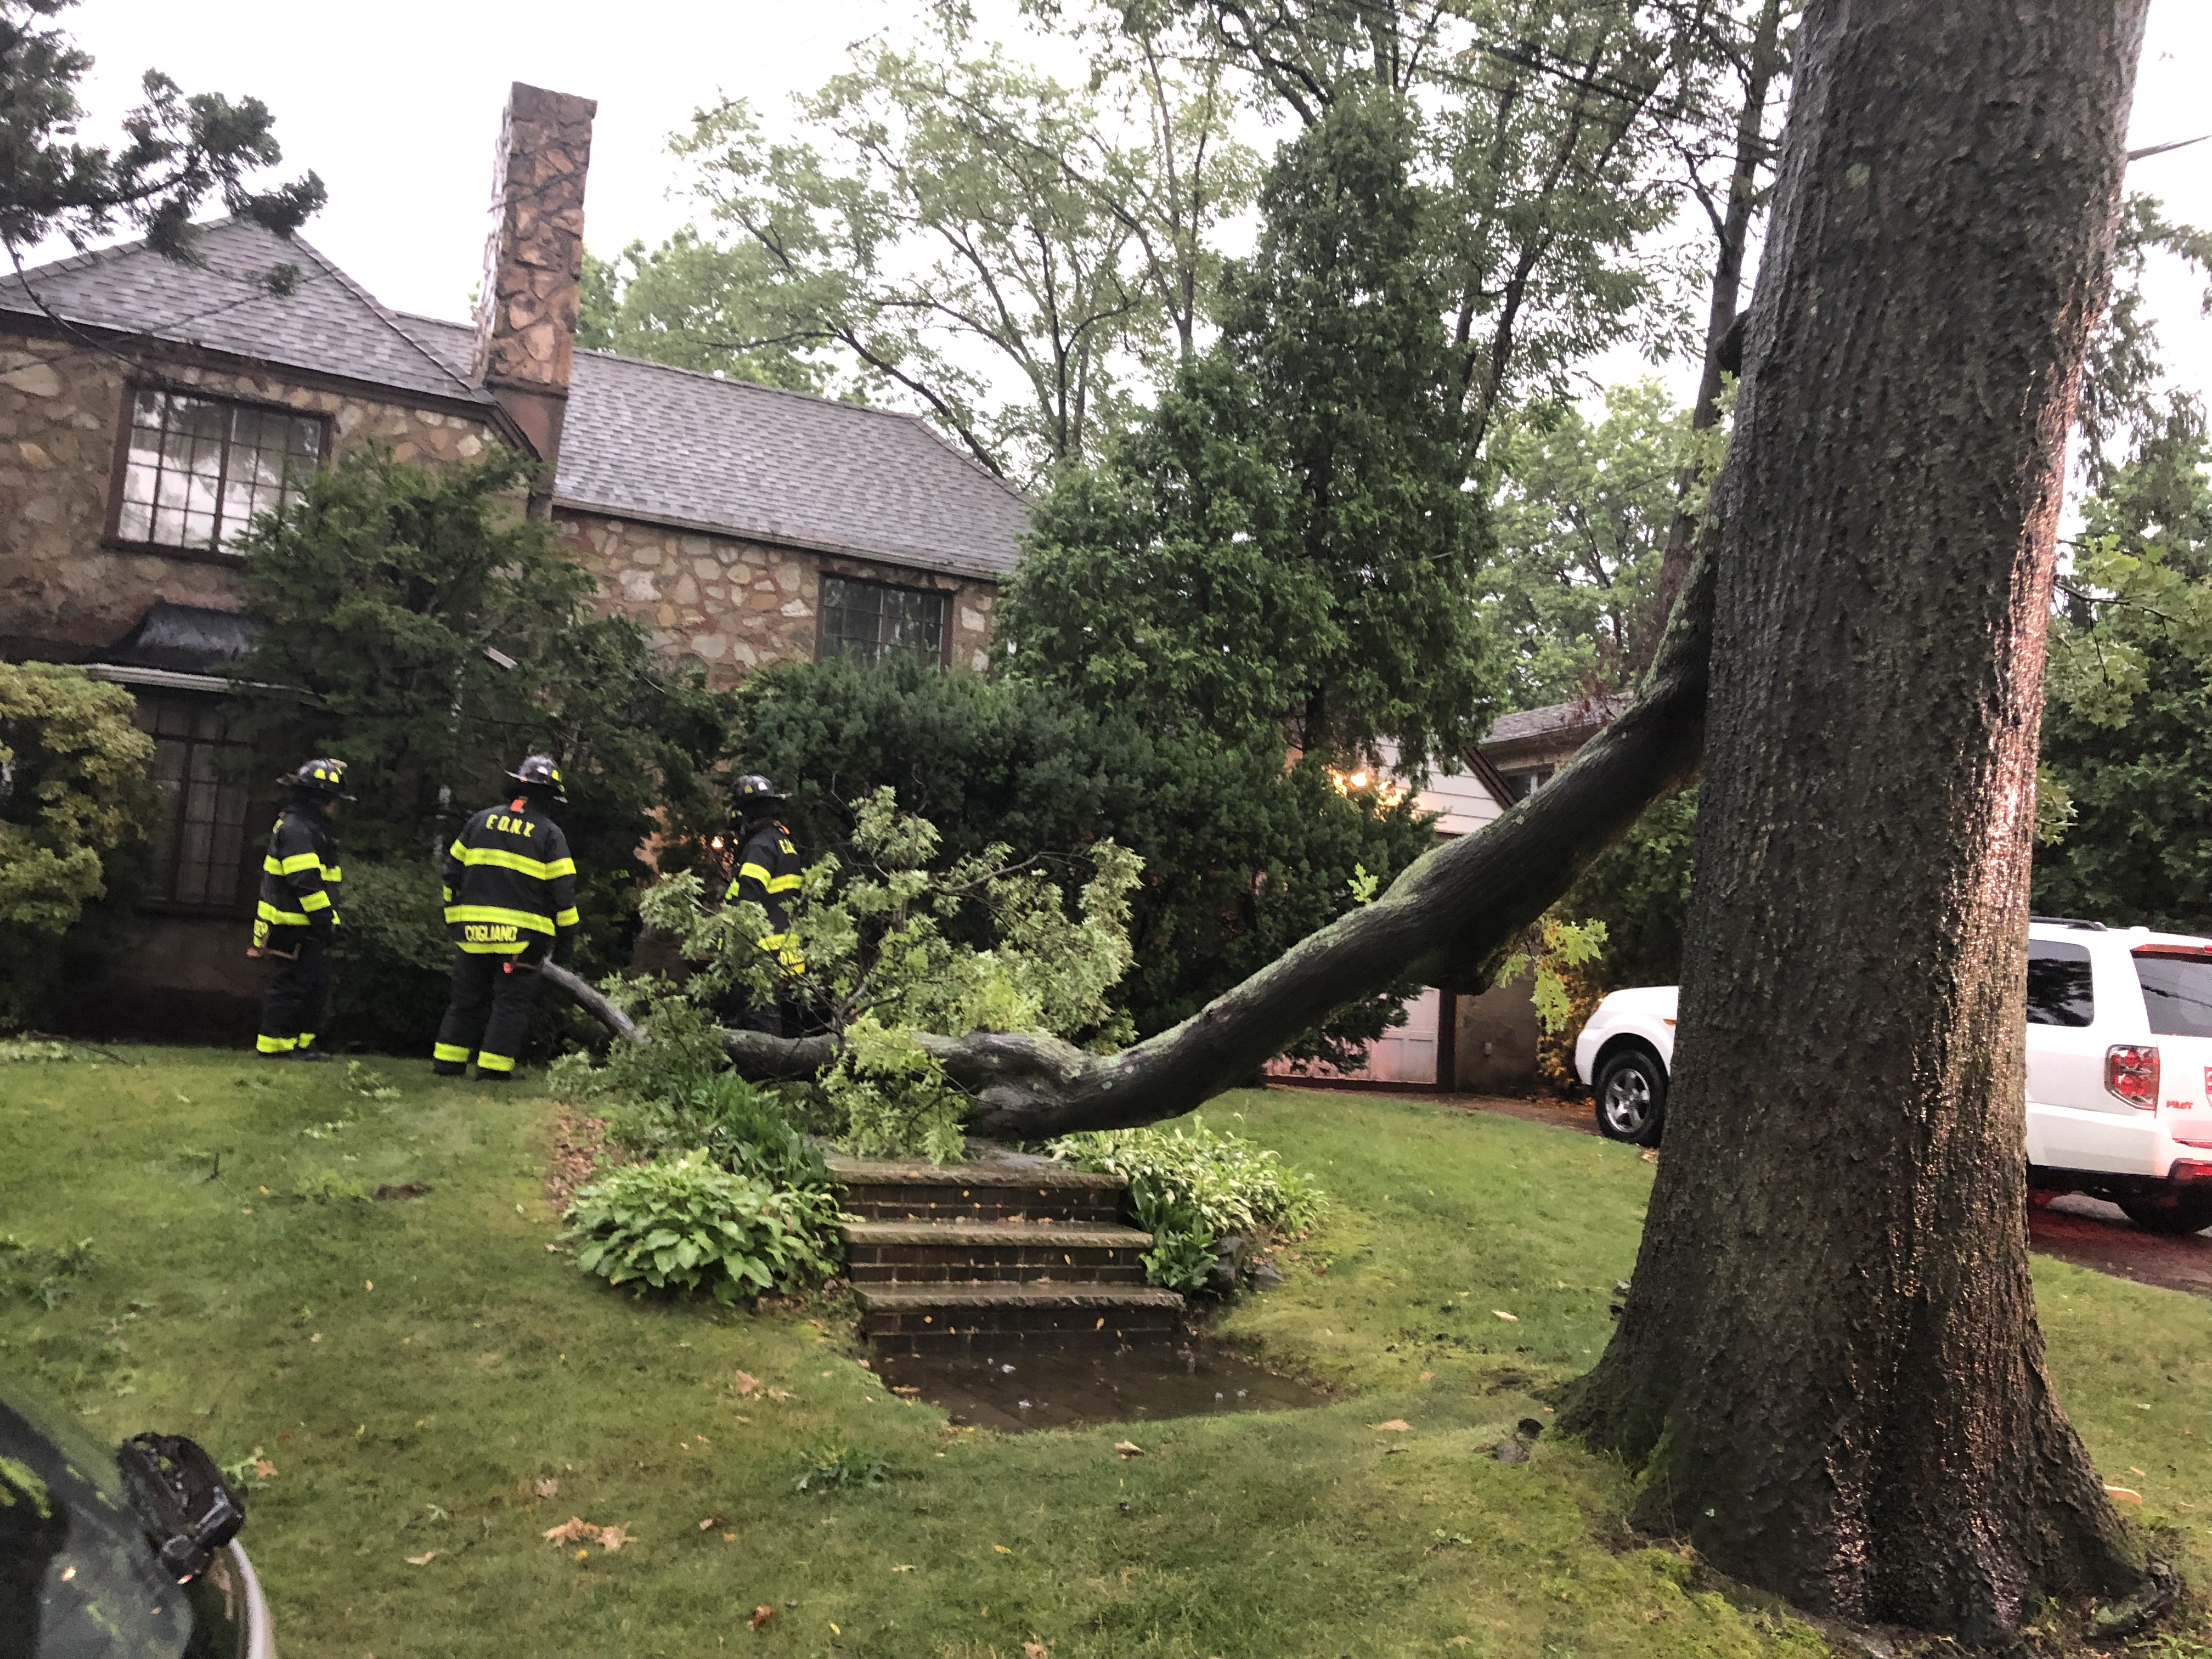 Update: Tree branch hangs low over street; Large tree limb falls onto lawn, hits house